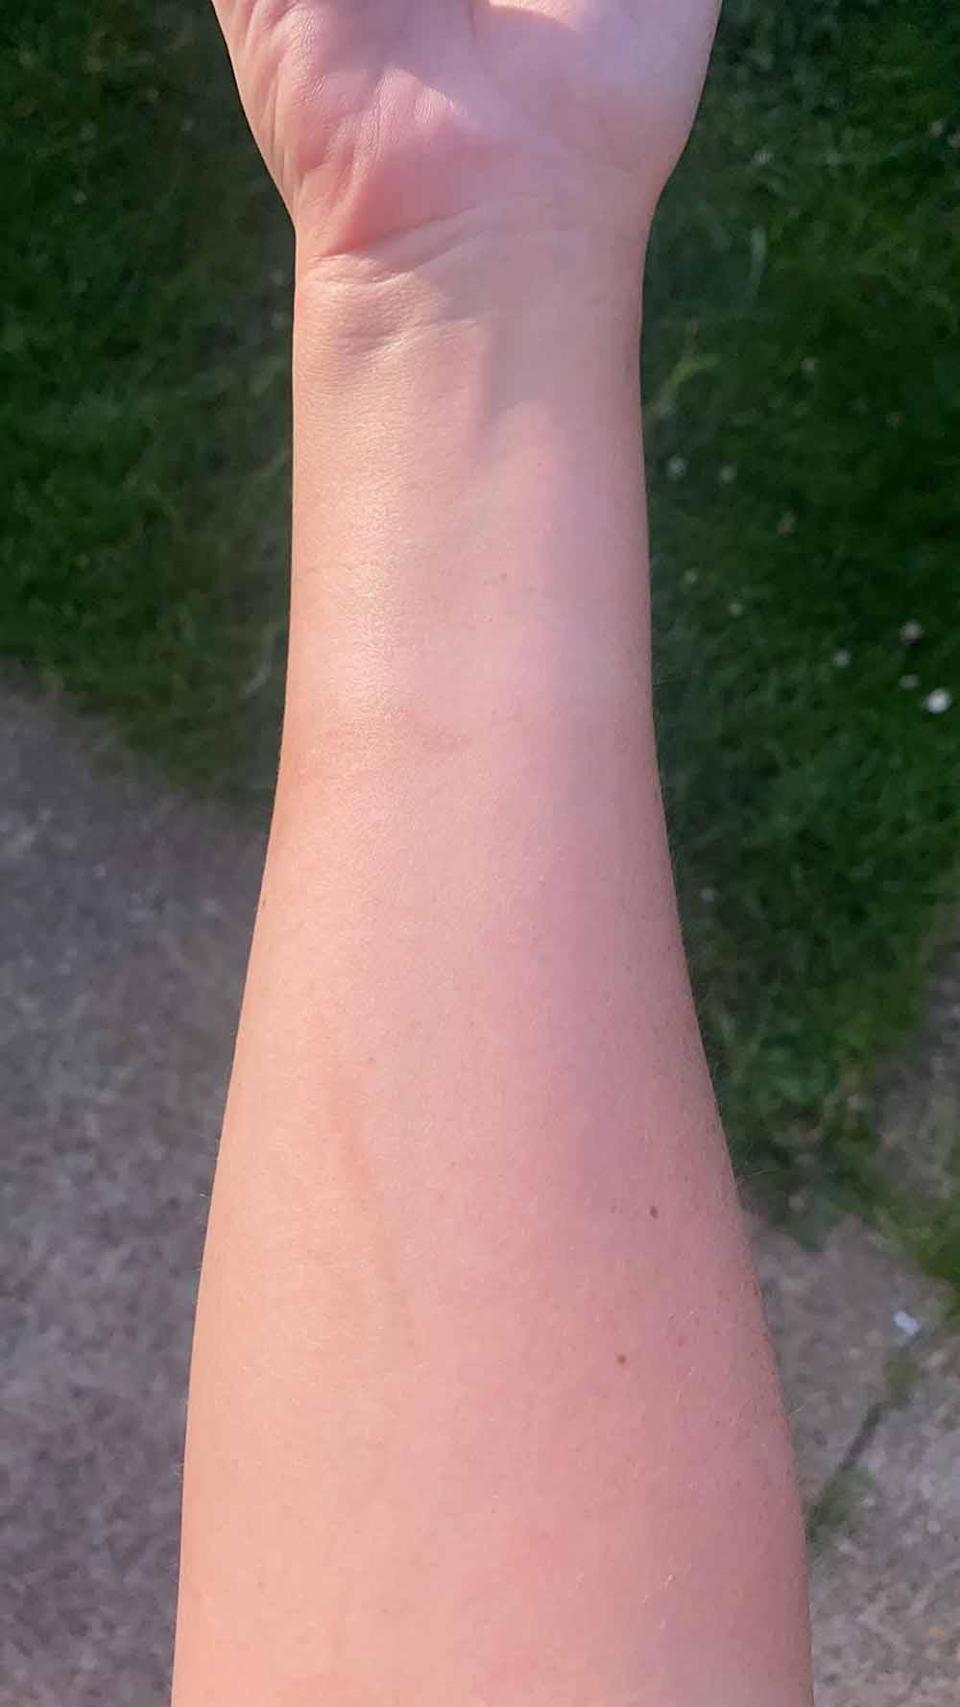 Paige's arm has healed after using the oil. PA REAL LIFE COLLECT